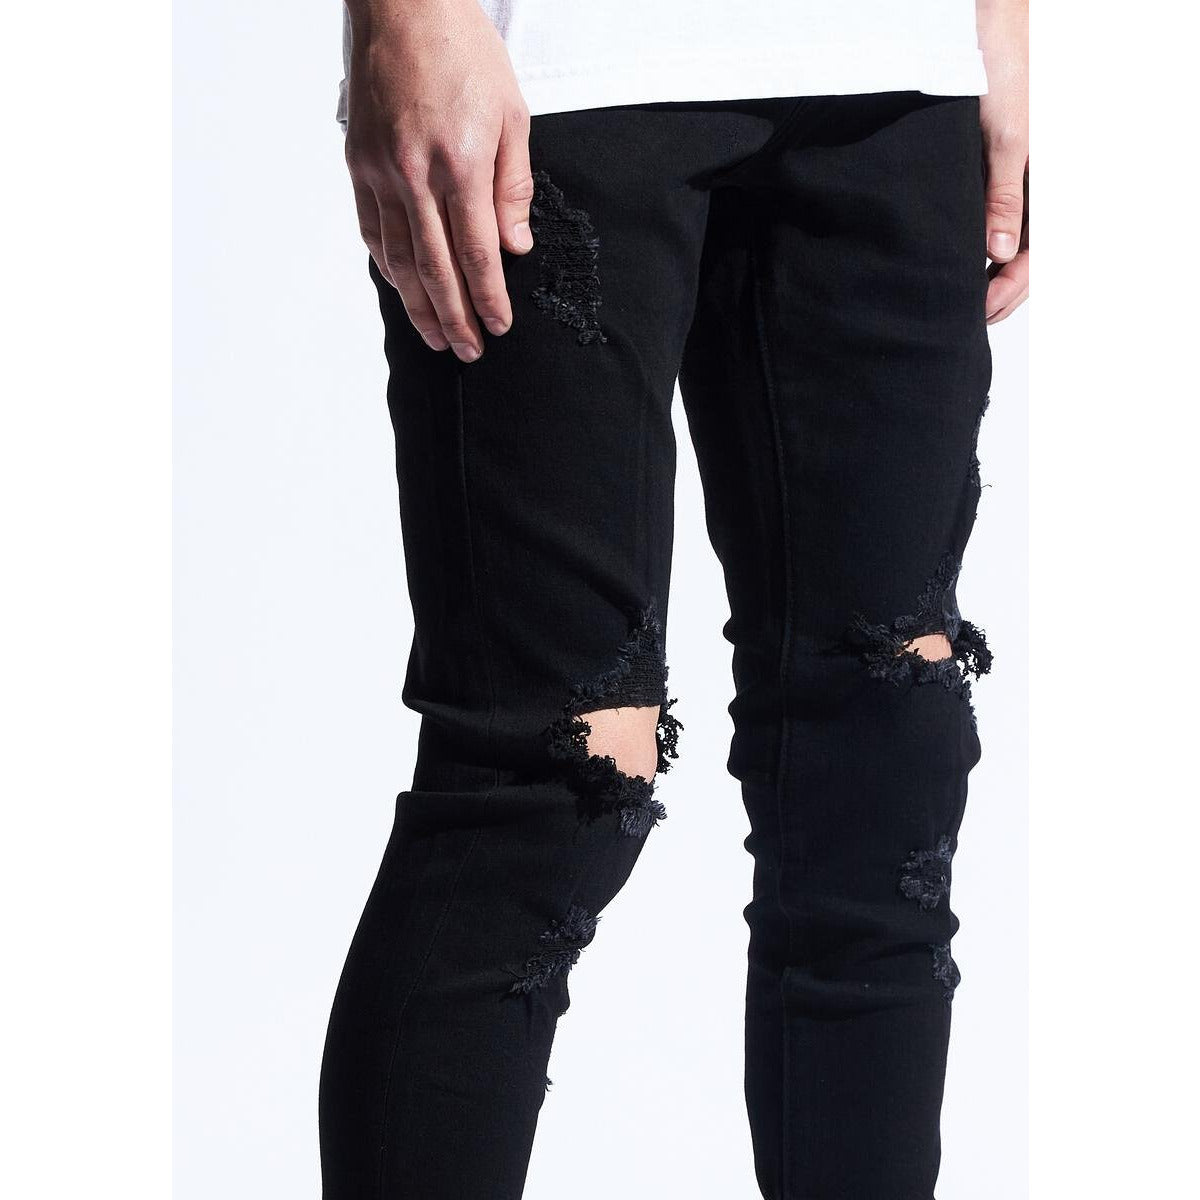 Karter Collection Kevs Black Jeans w/Tears (KARPK-101)